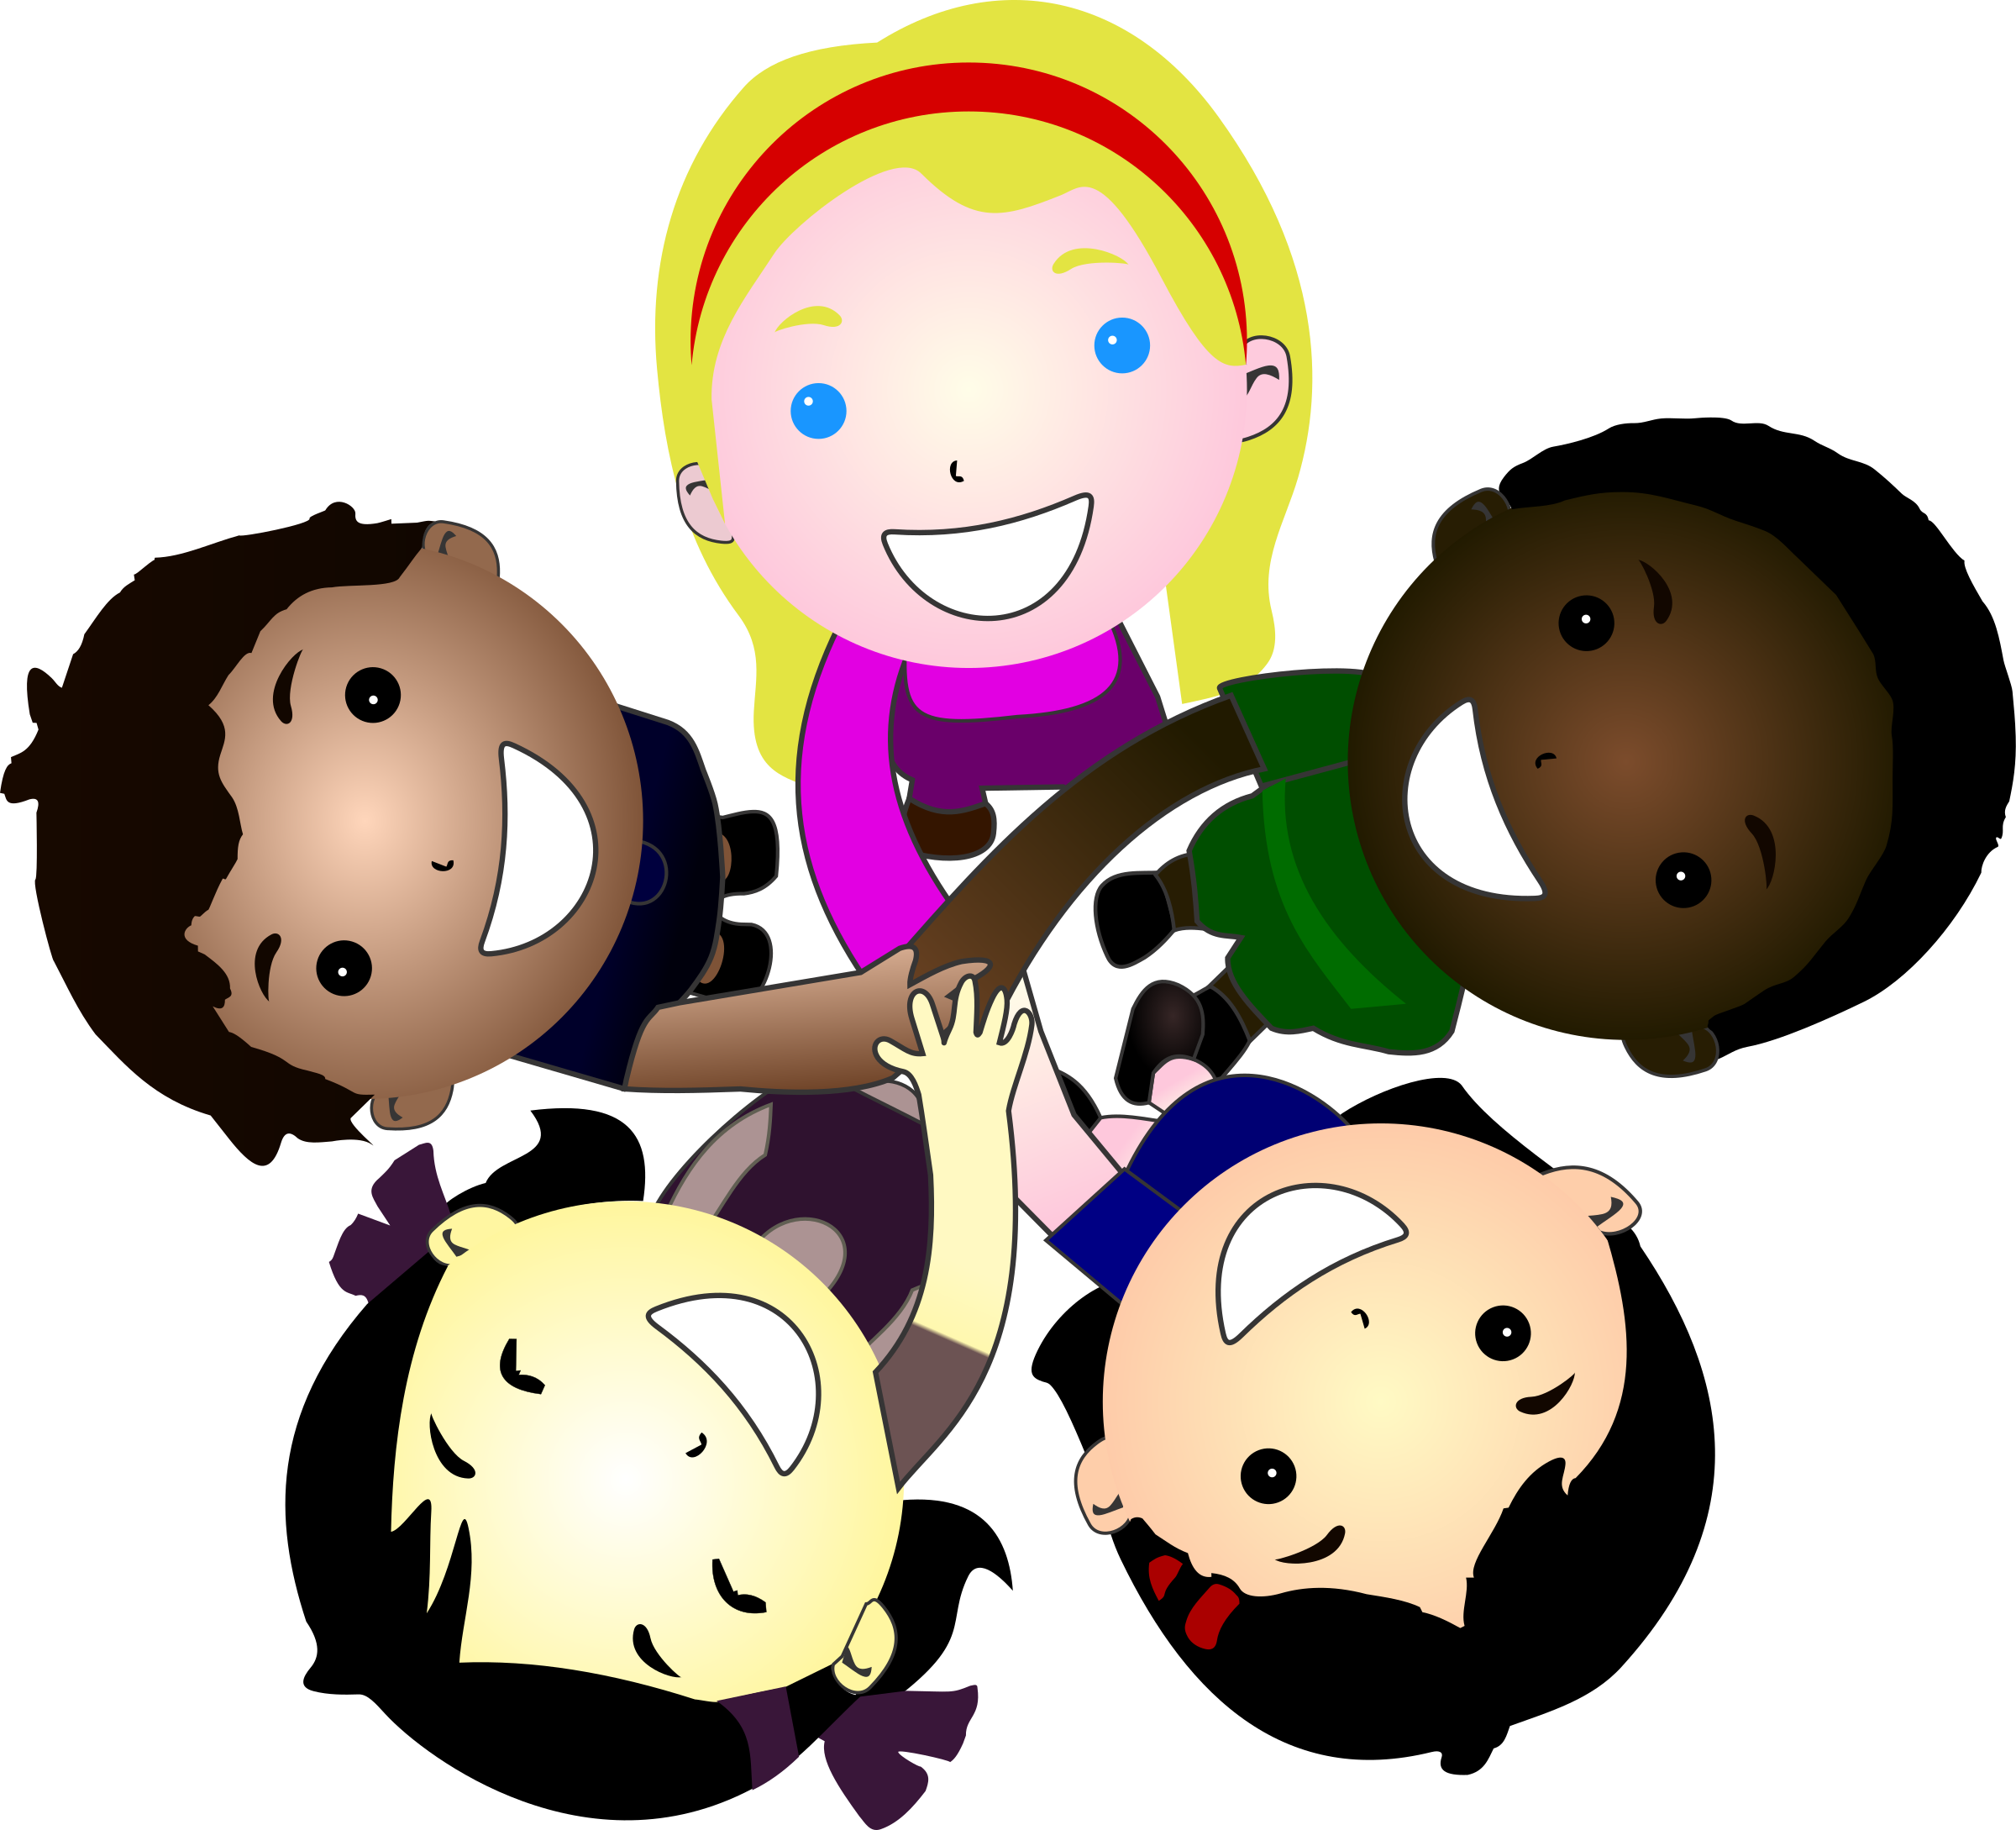 A story book clipart image library download A Story To Celebrate Friendship Day - Kanika G's Books image library download